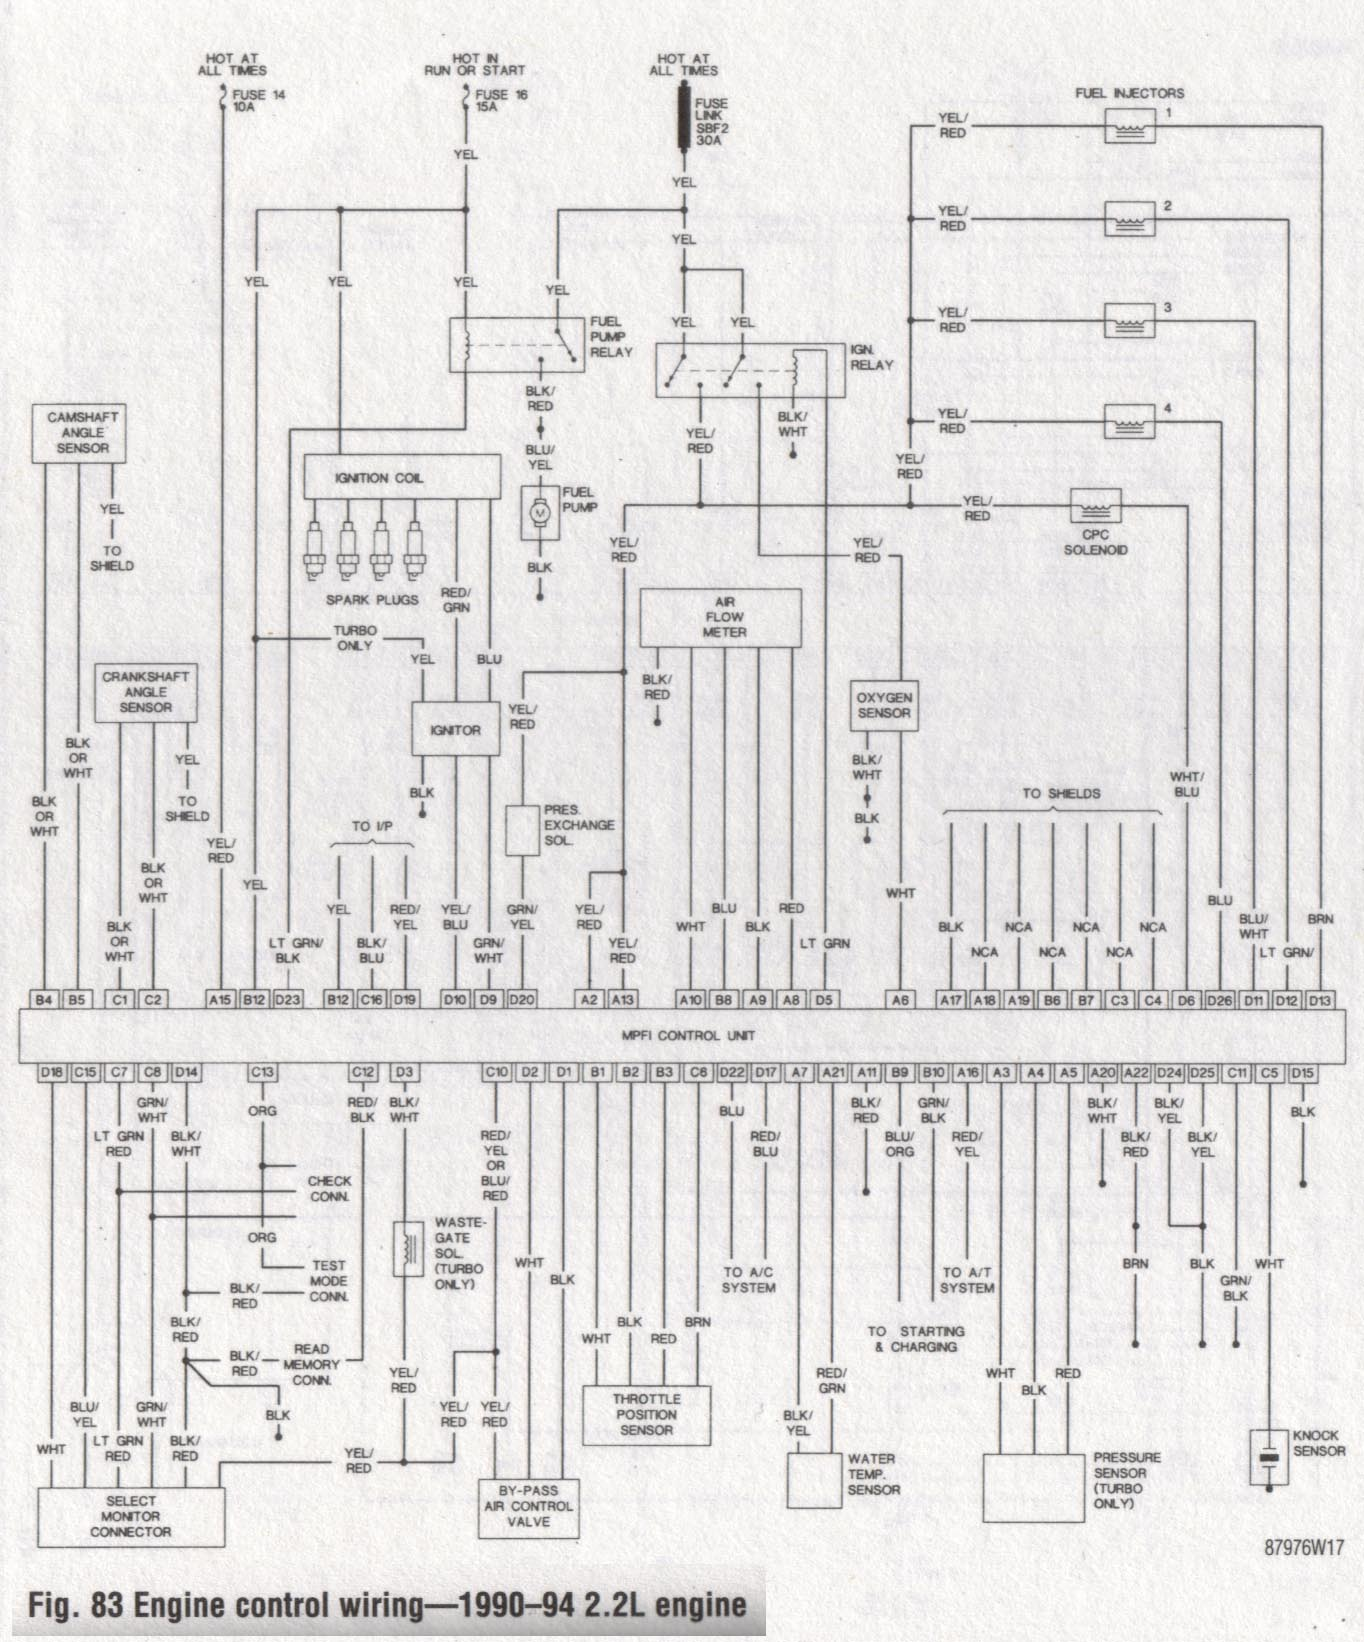 Subaru Vanagon Wiring Diagram